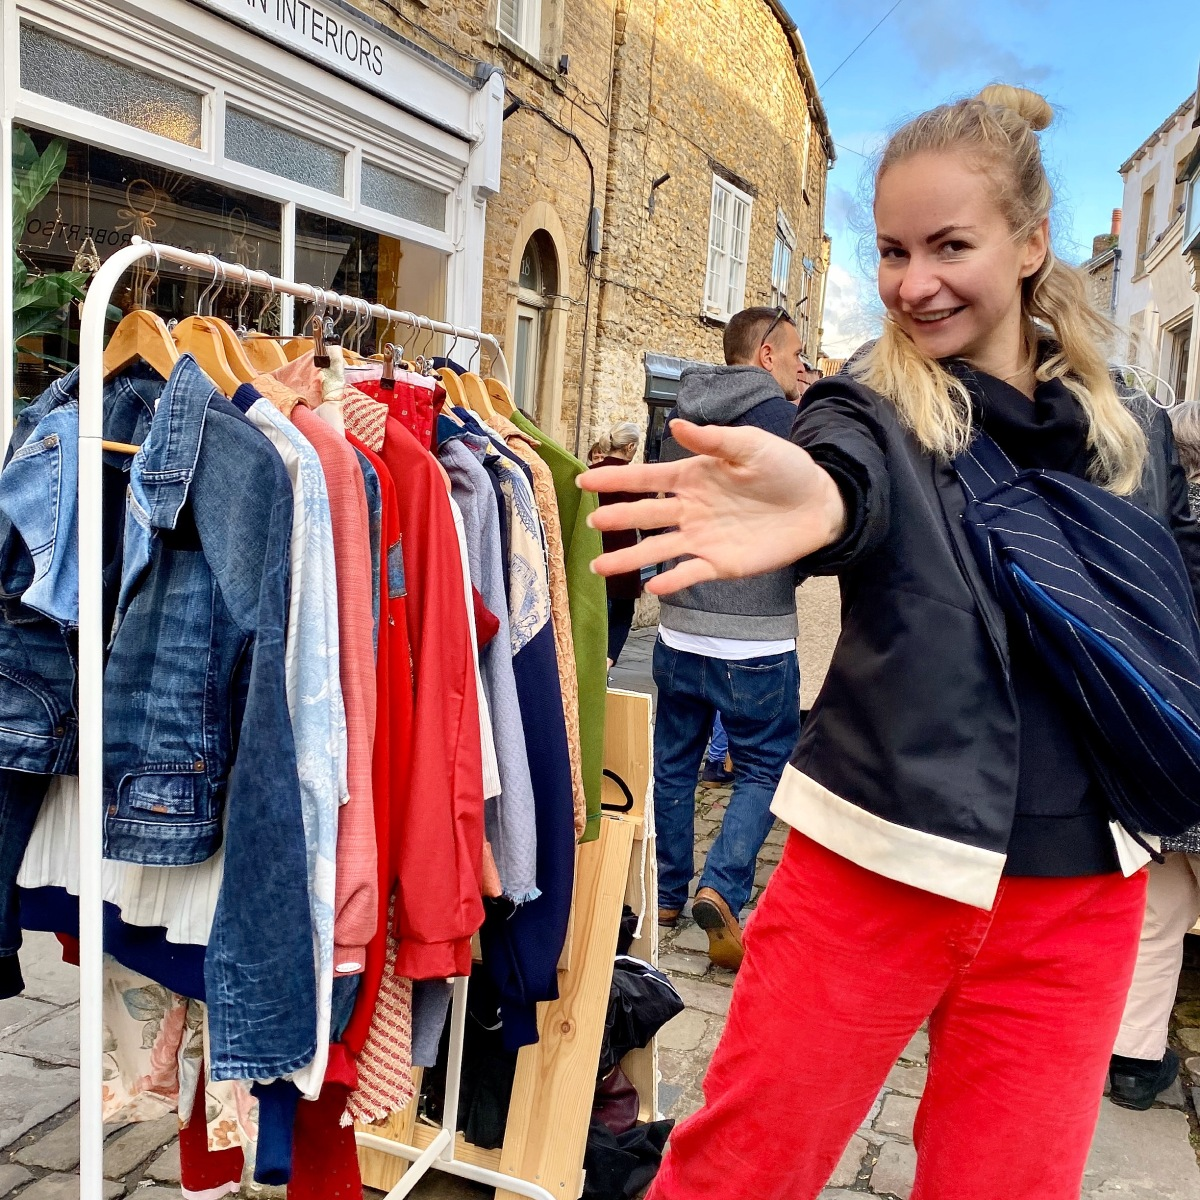 market, selling, garments, sustainable fashion, eco fashion, market day, the frome independent